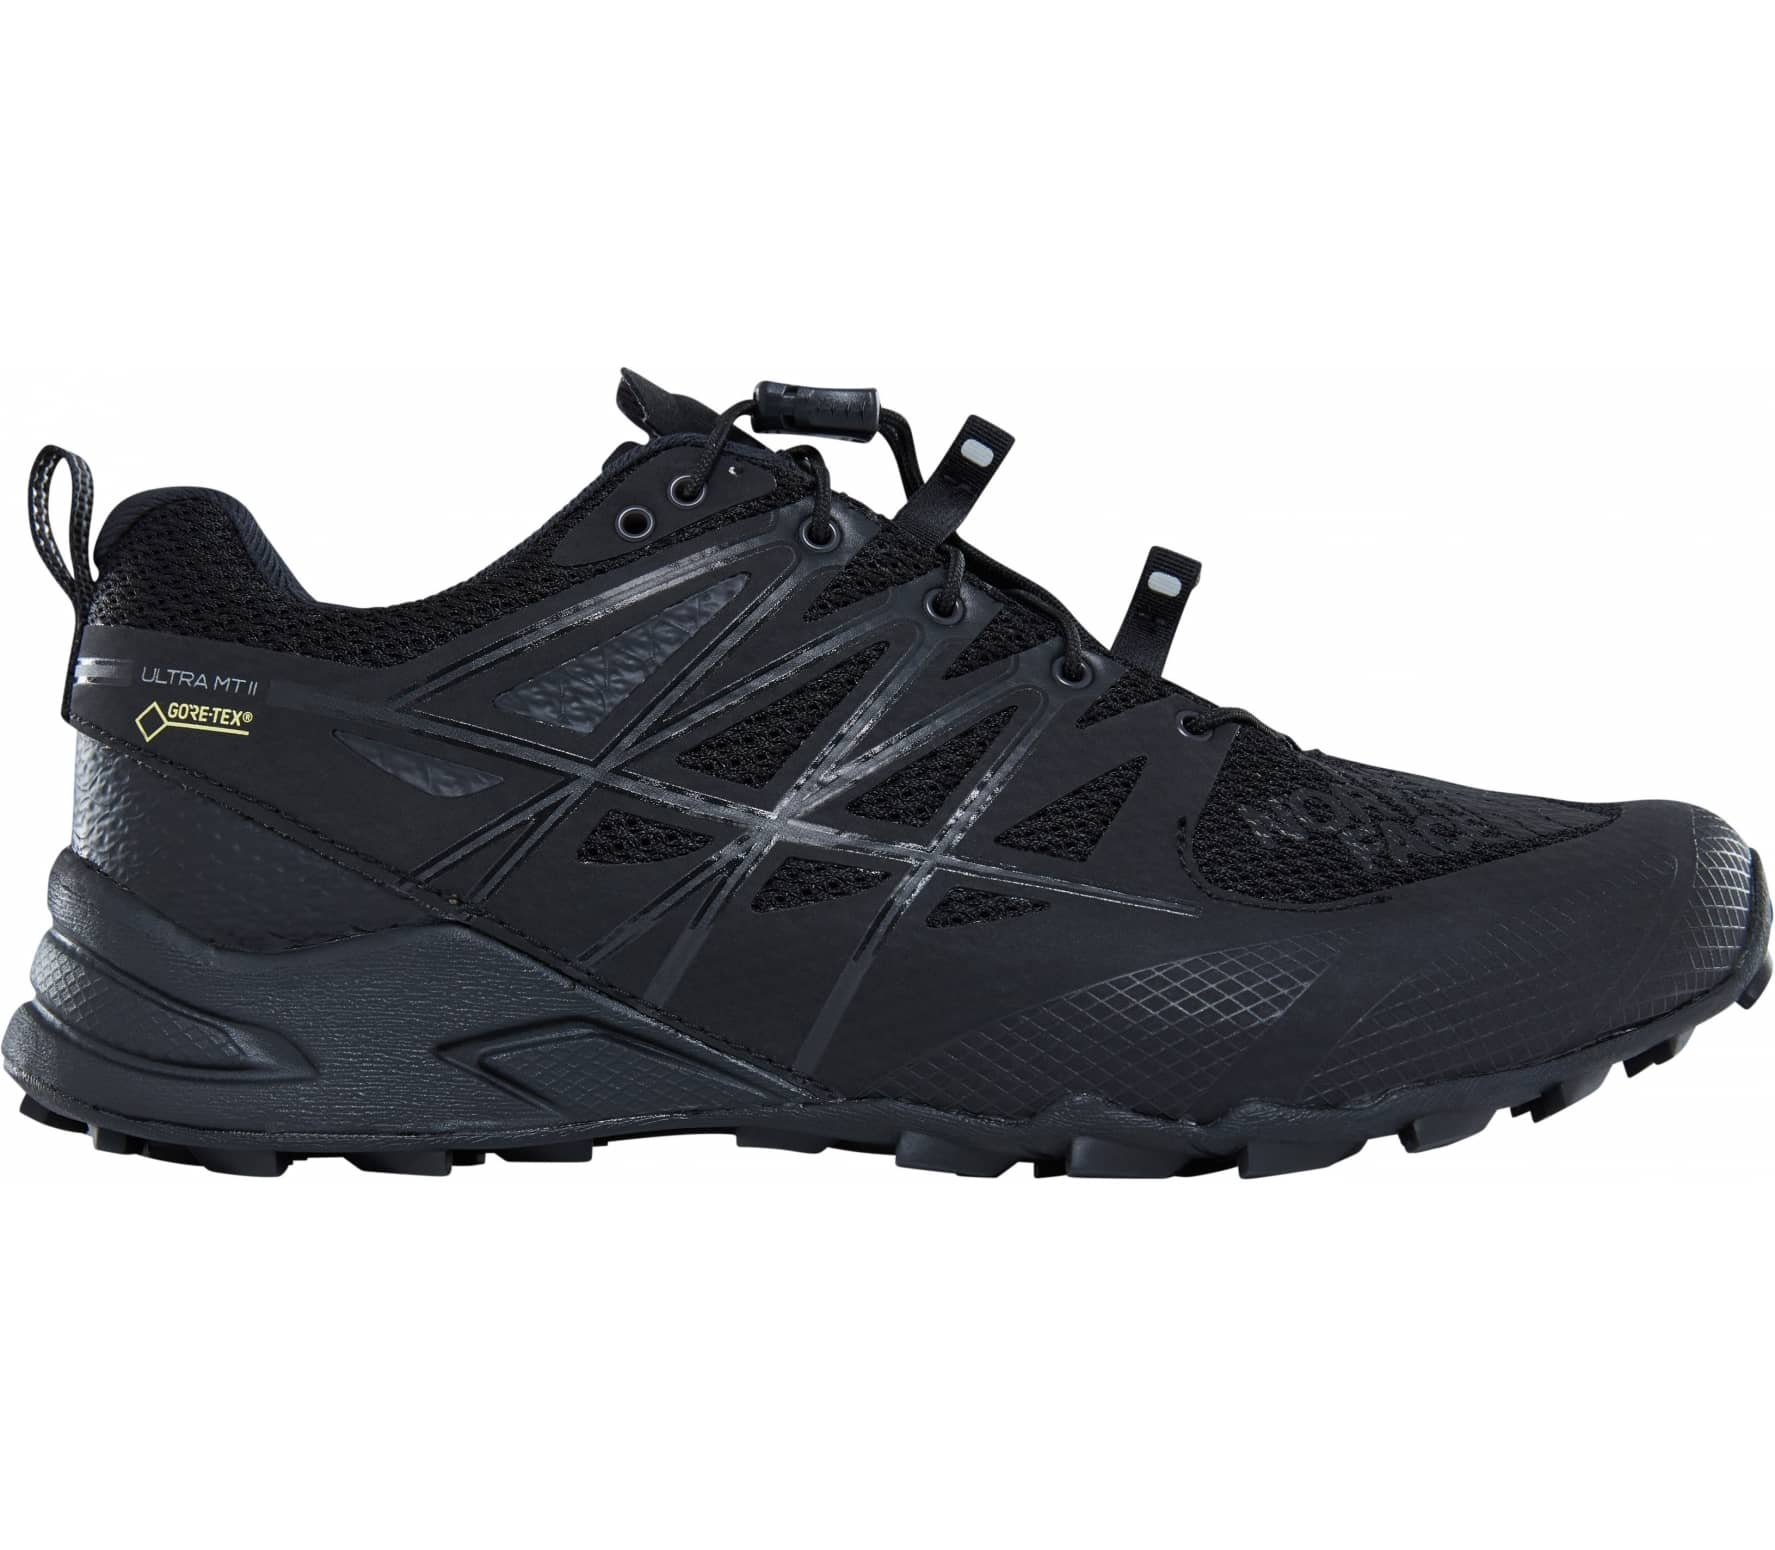 The North Face - Ultra Mt II GTX women s trail running shoes (black) 065fbf52092